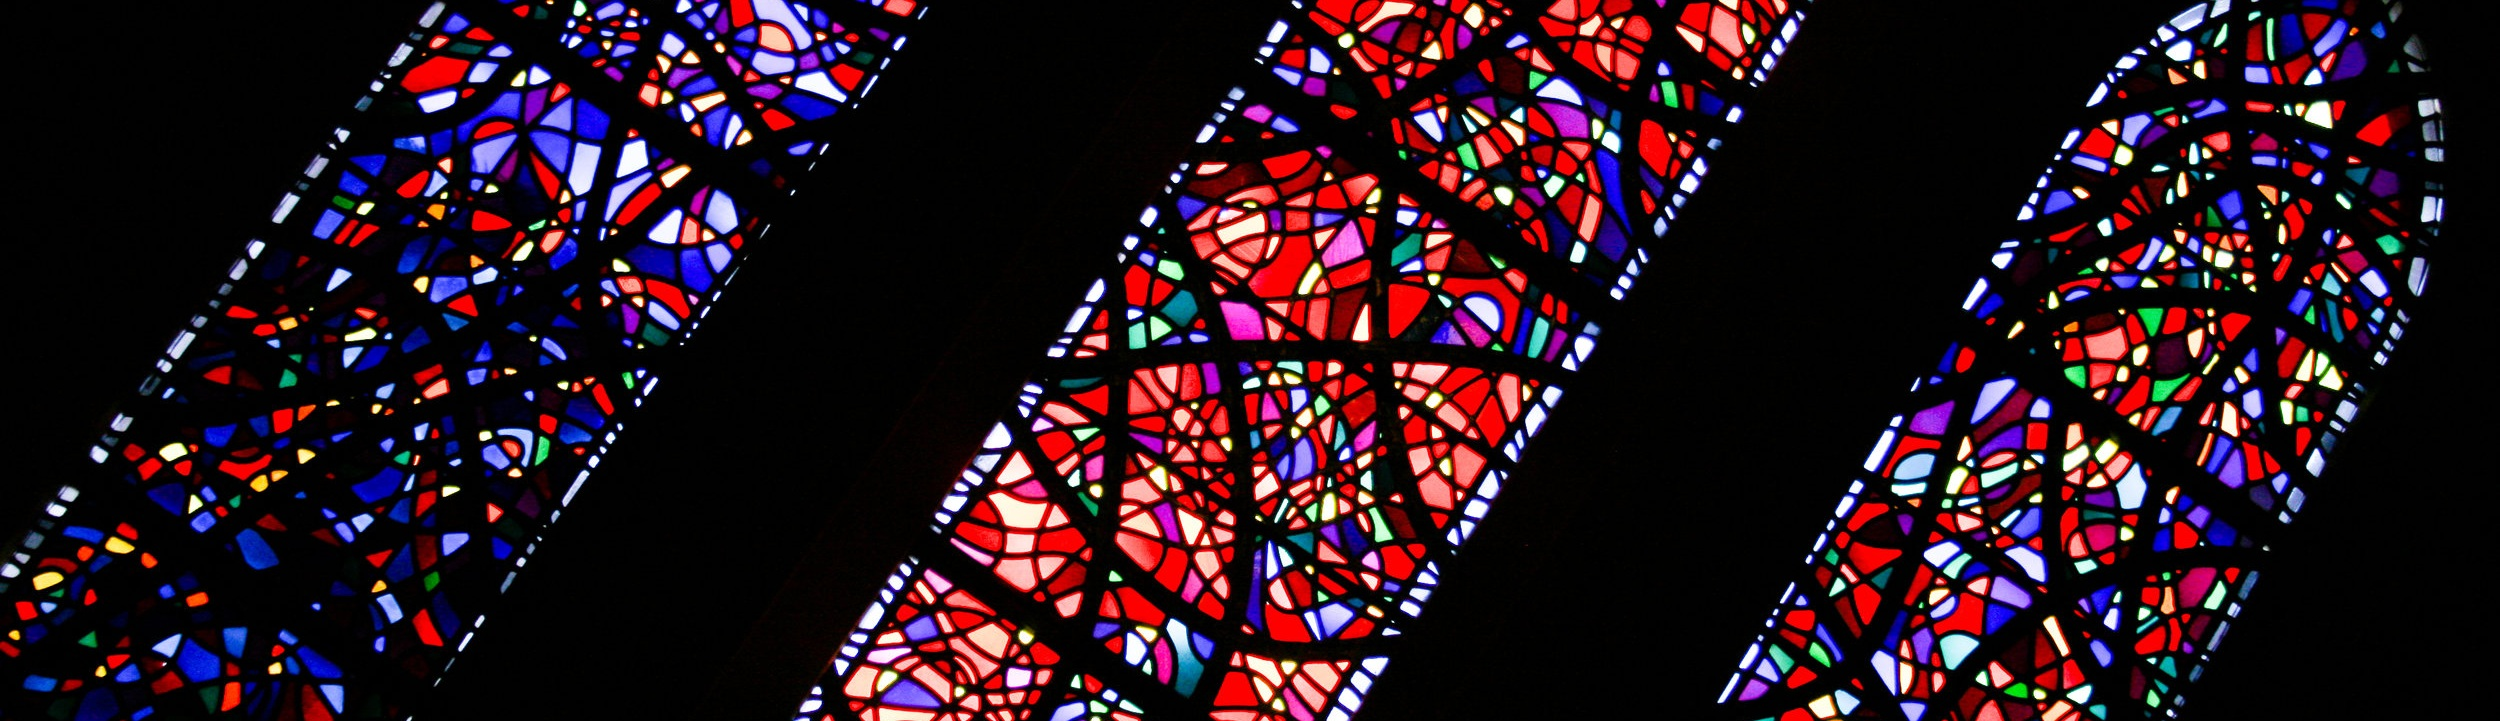 Stained glass windows at the National Cathedral